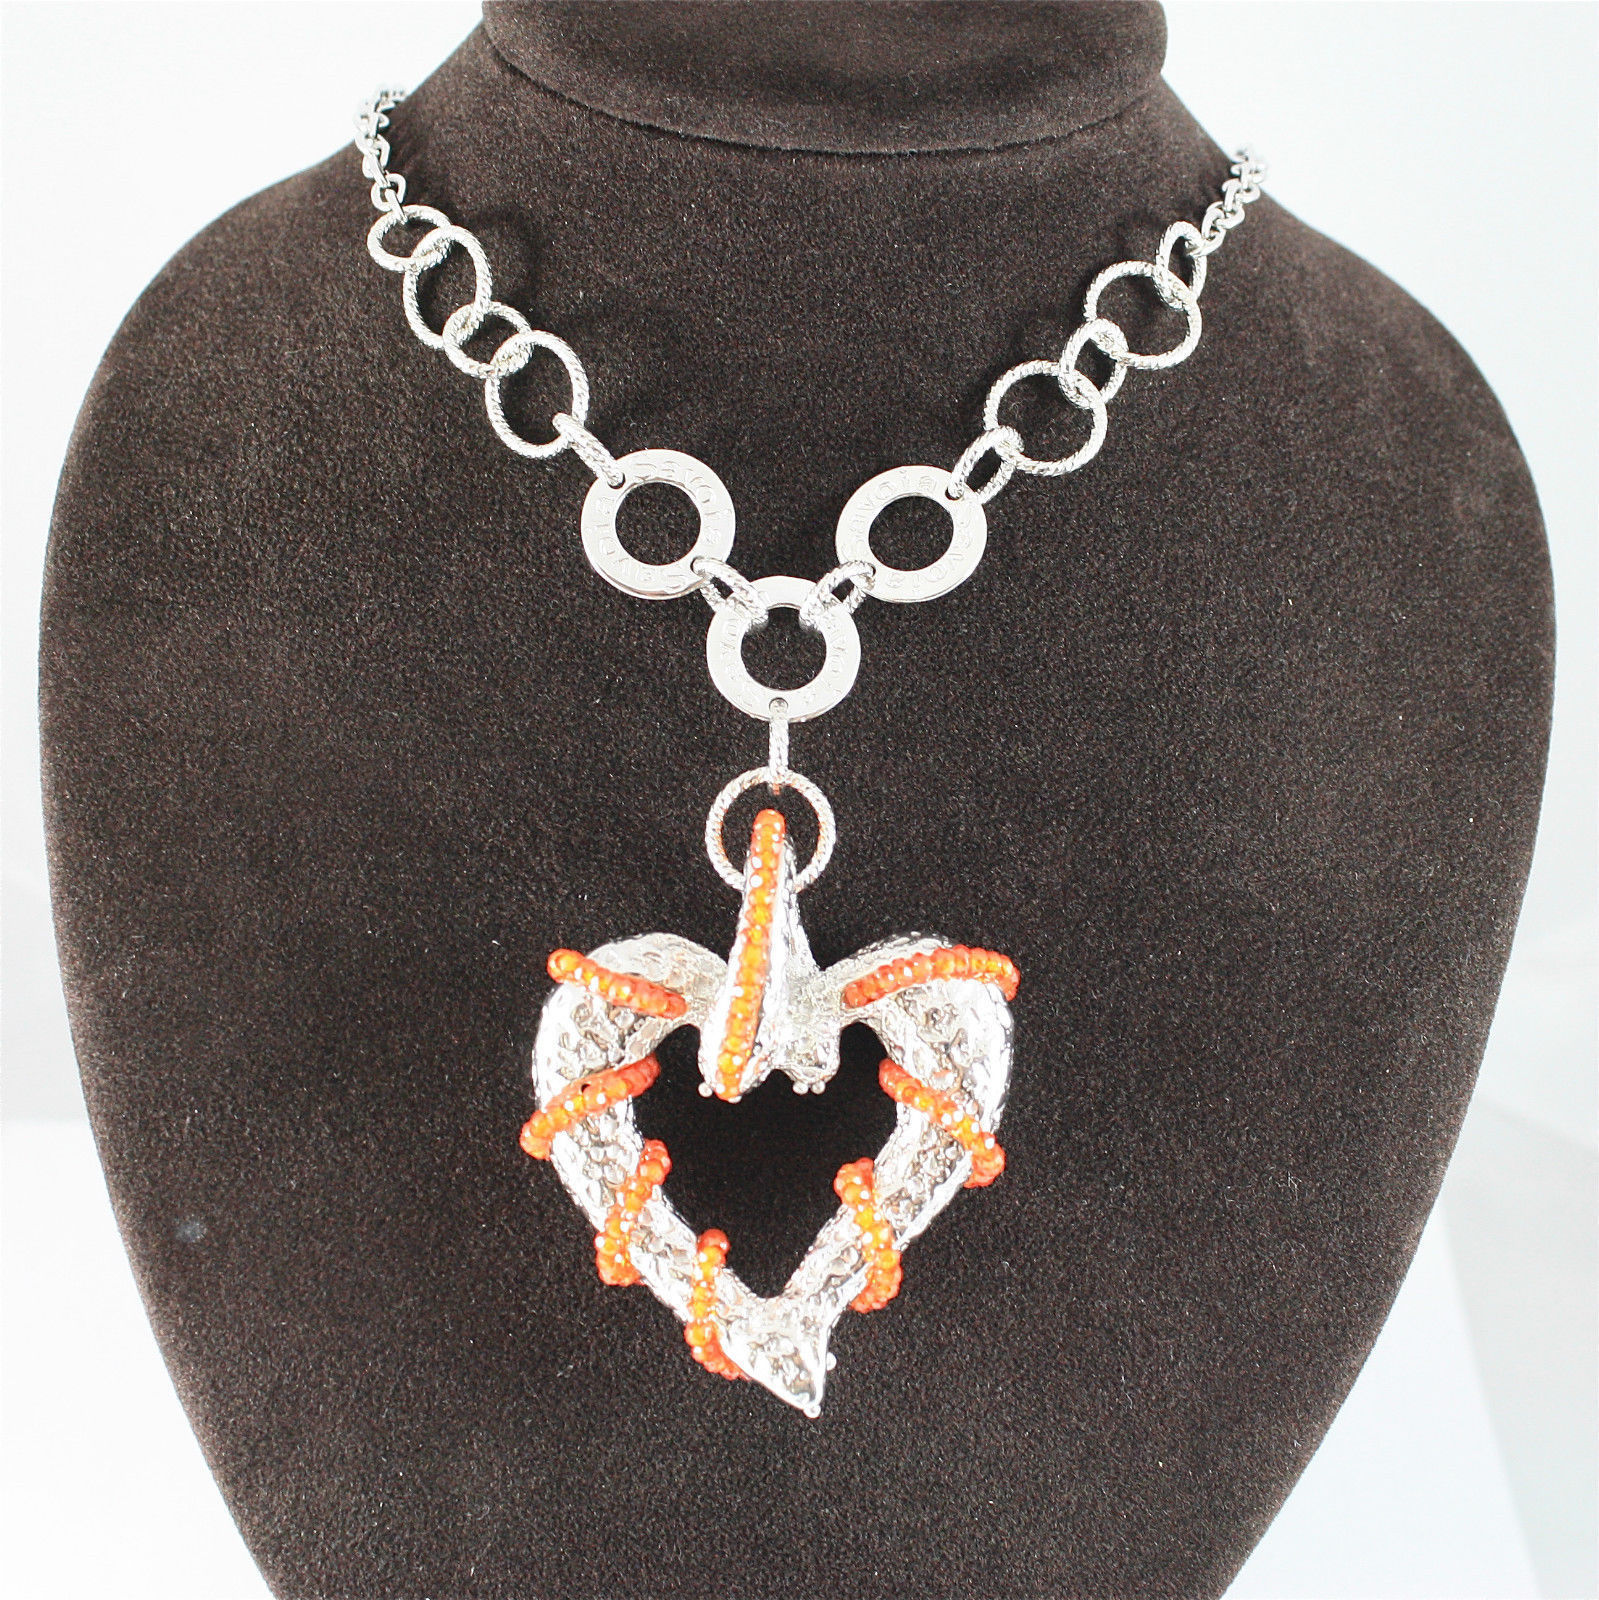 925 RHODIUM SILVER NECKLACE WITH FACETED CARNELIAN MADE IN ITALY BYSAVOIA JEWEL